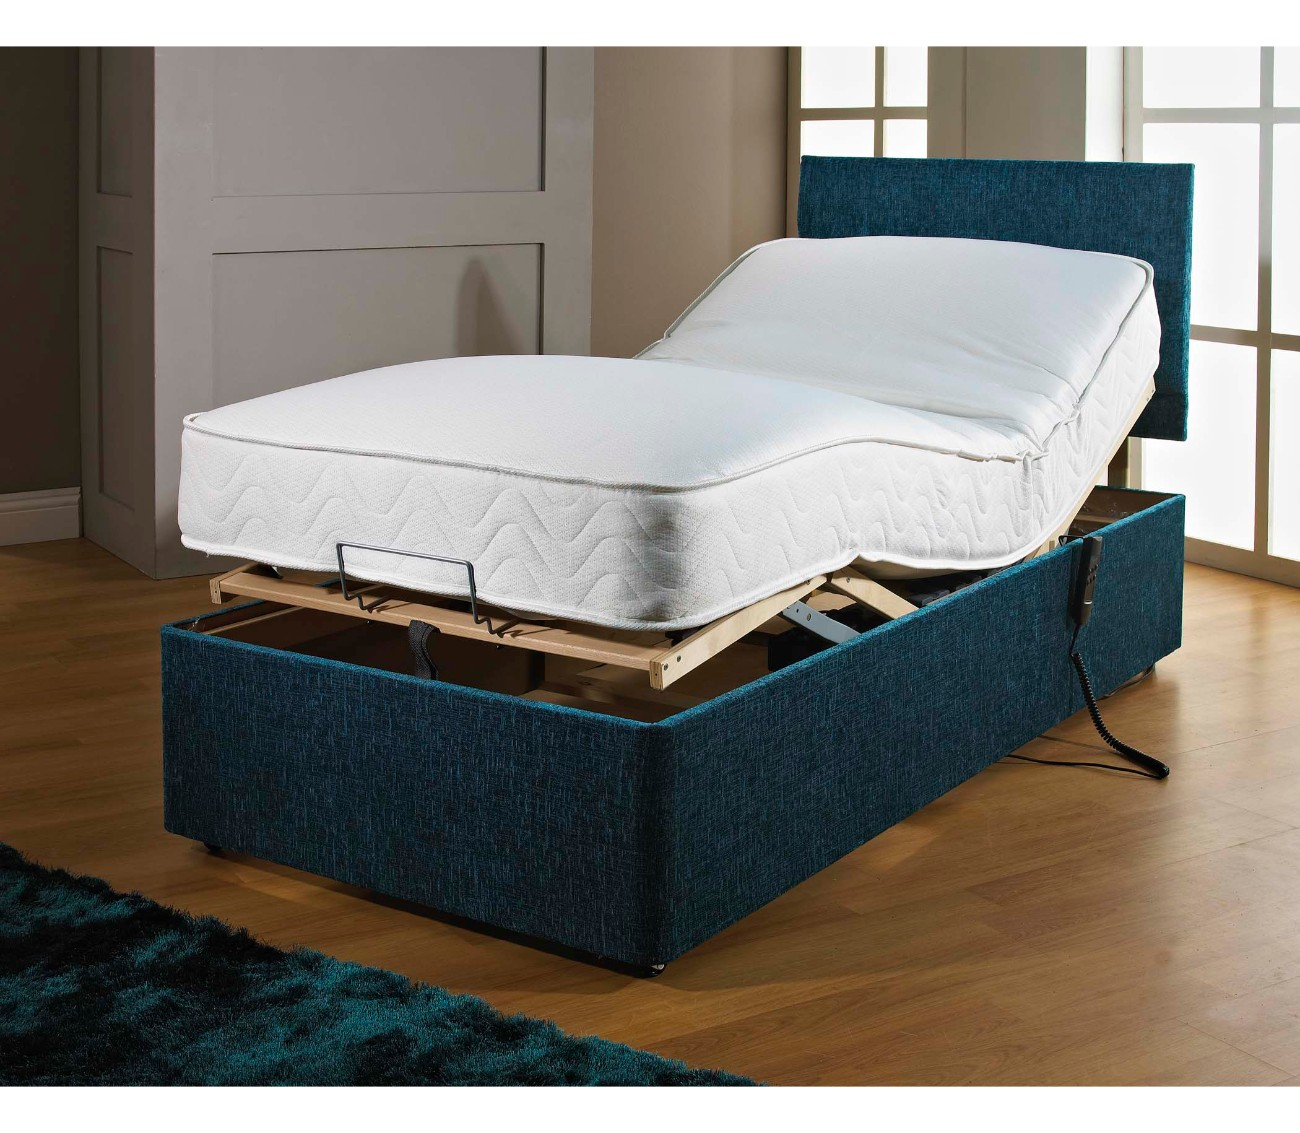 thumb_dvr_d_electric_bed_03